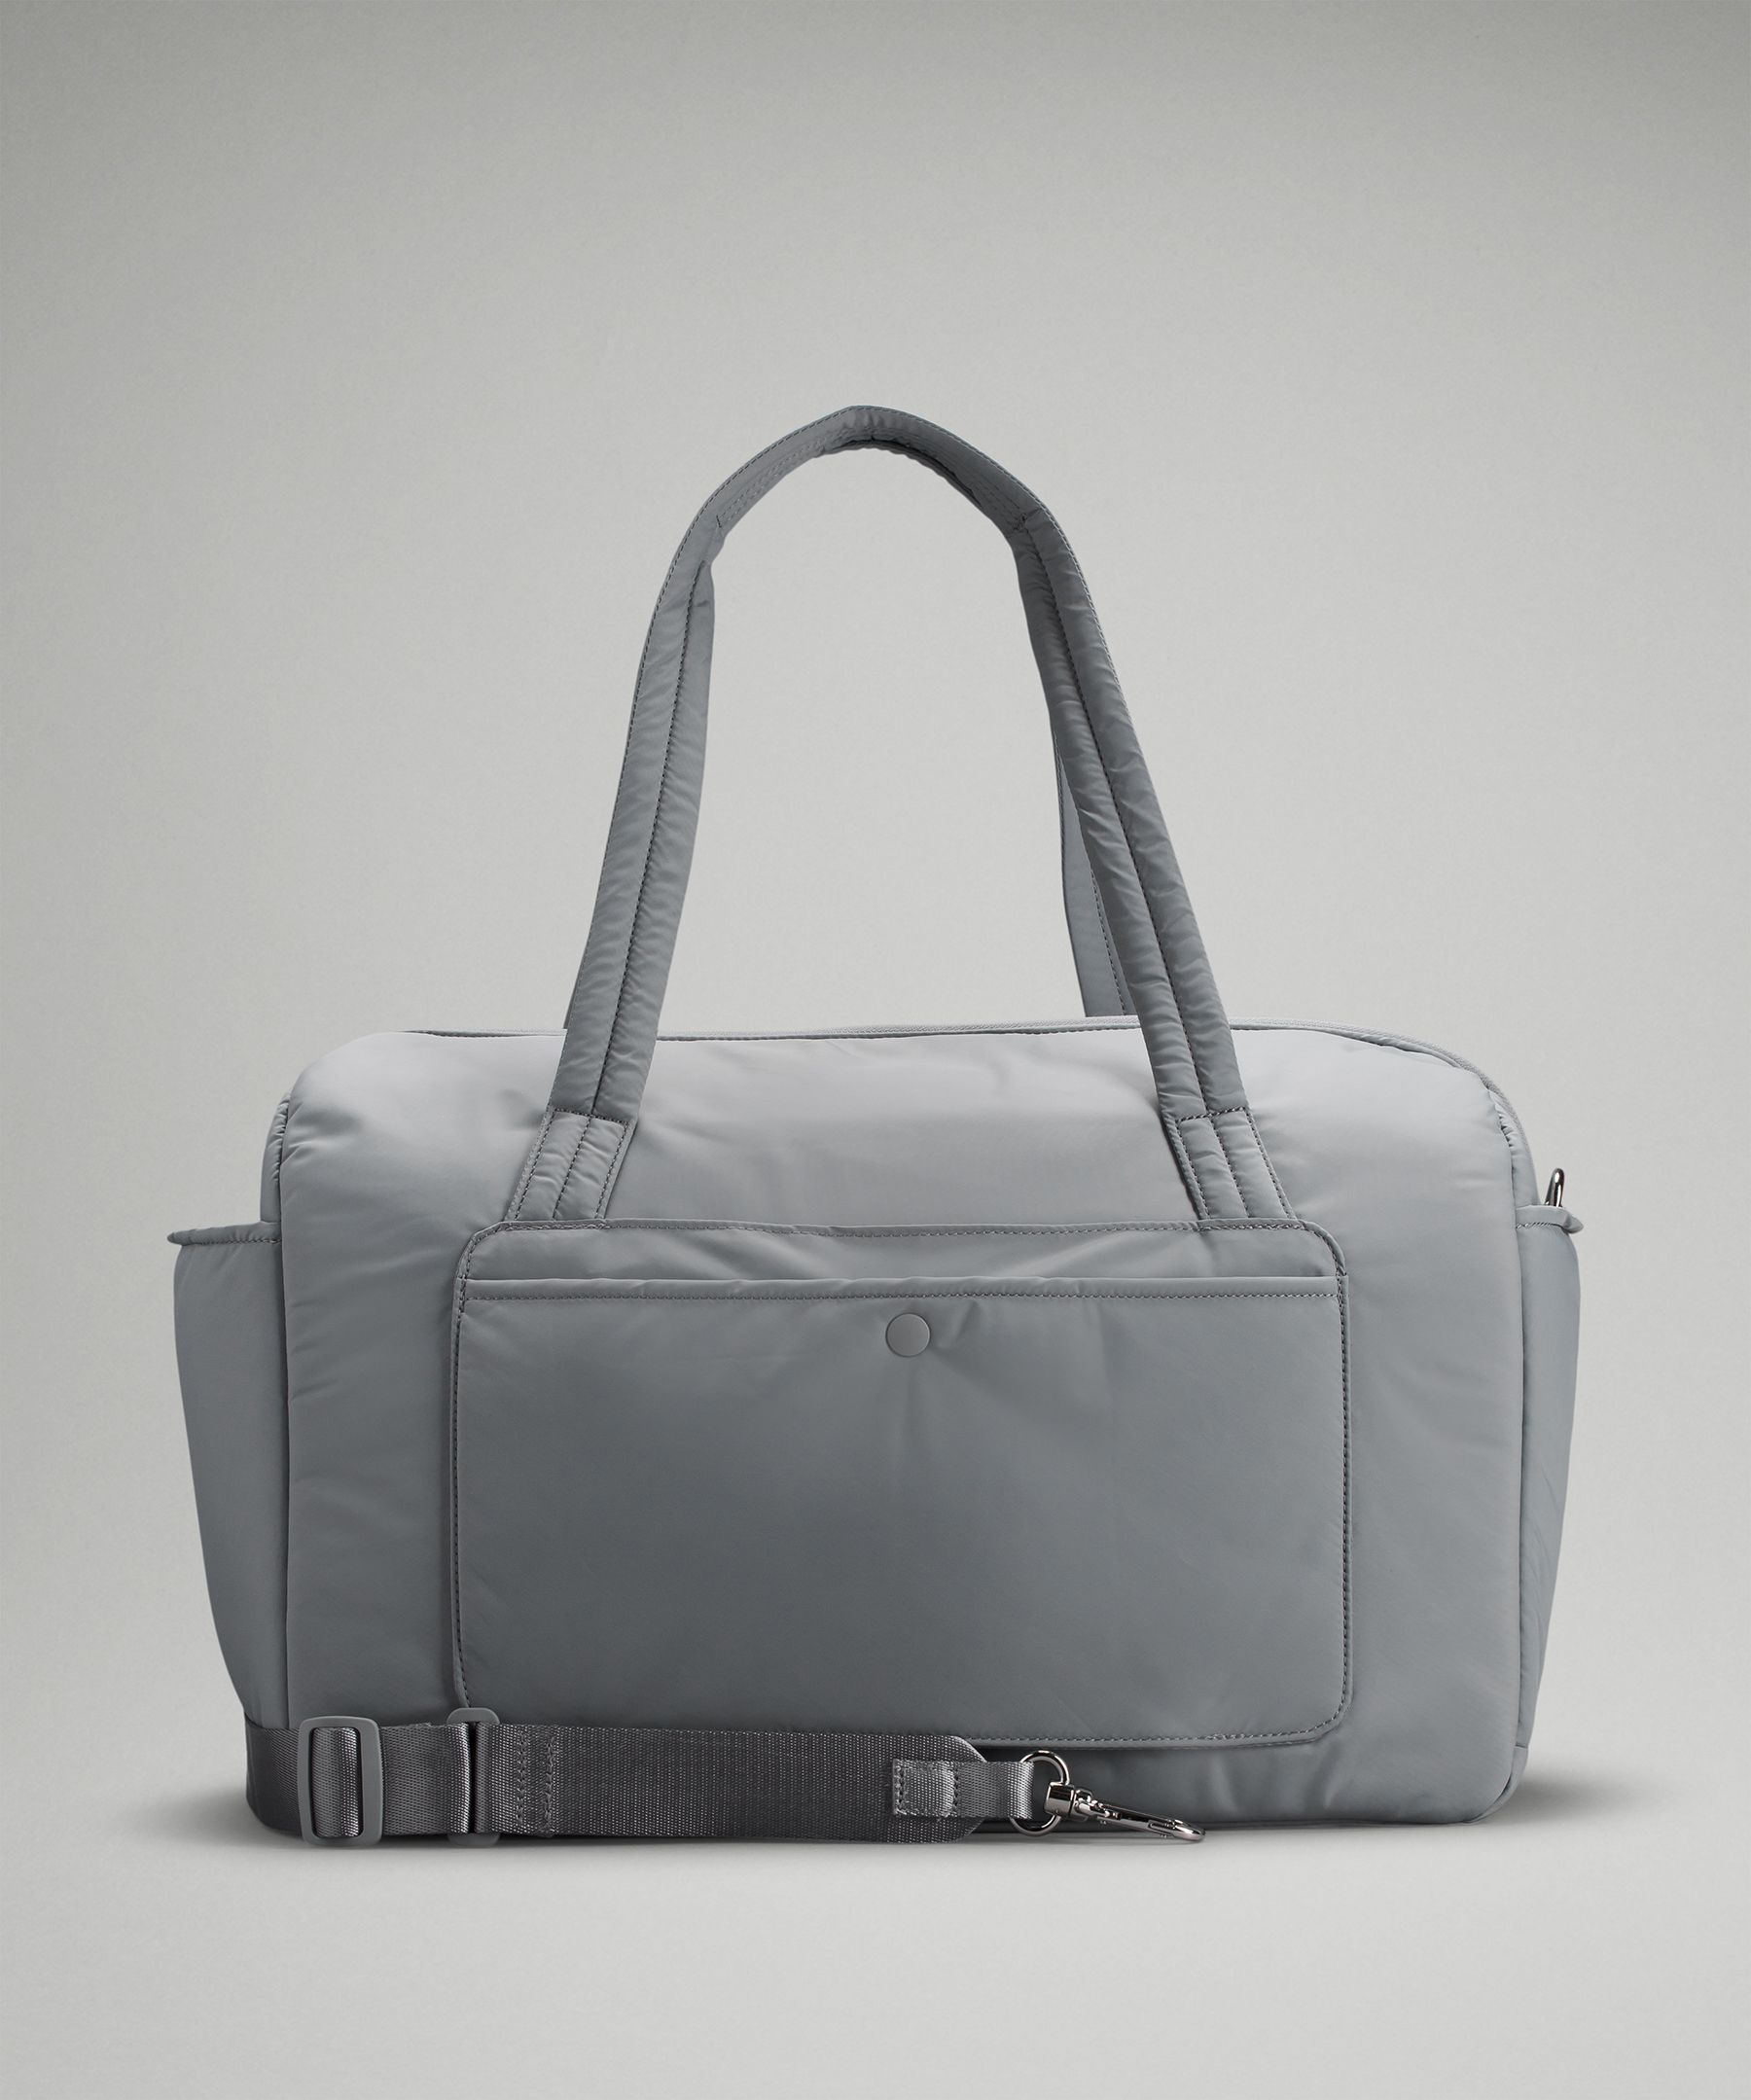 Curved Lines Duffle